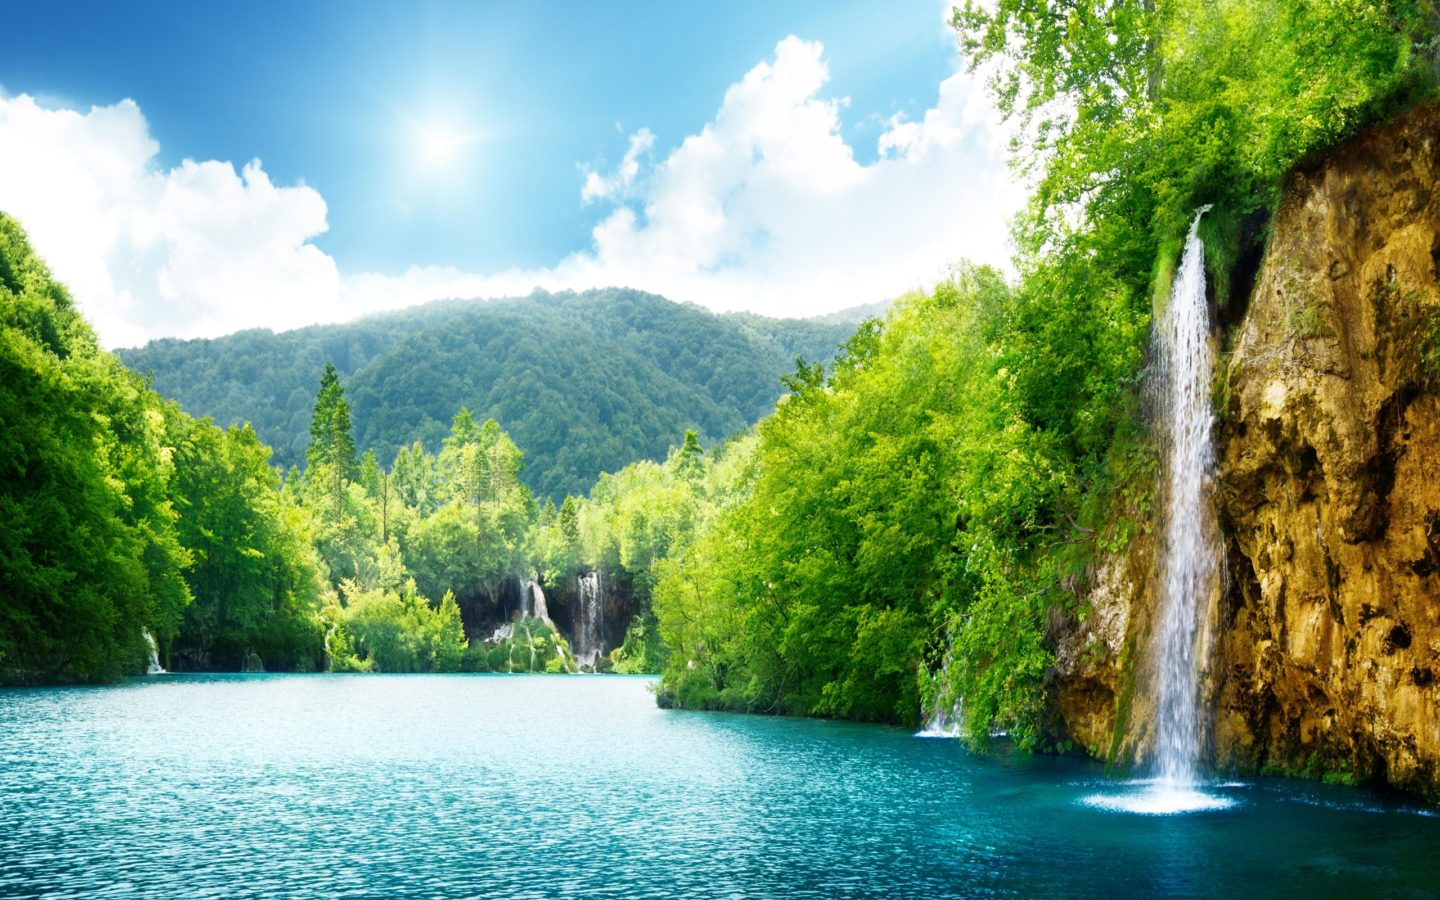 Hd Wallpapers Android Lock Screen Nature Waterfall Summer Lake Trees Hd Wallpaper 87432